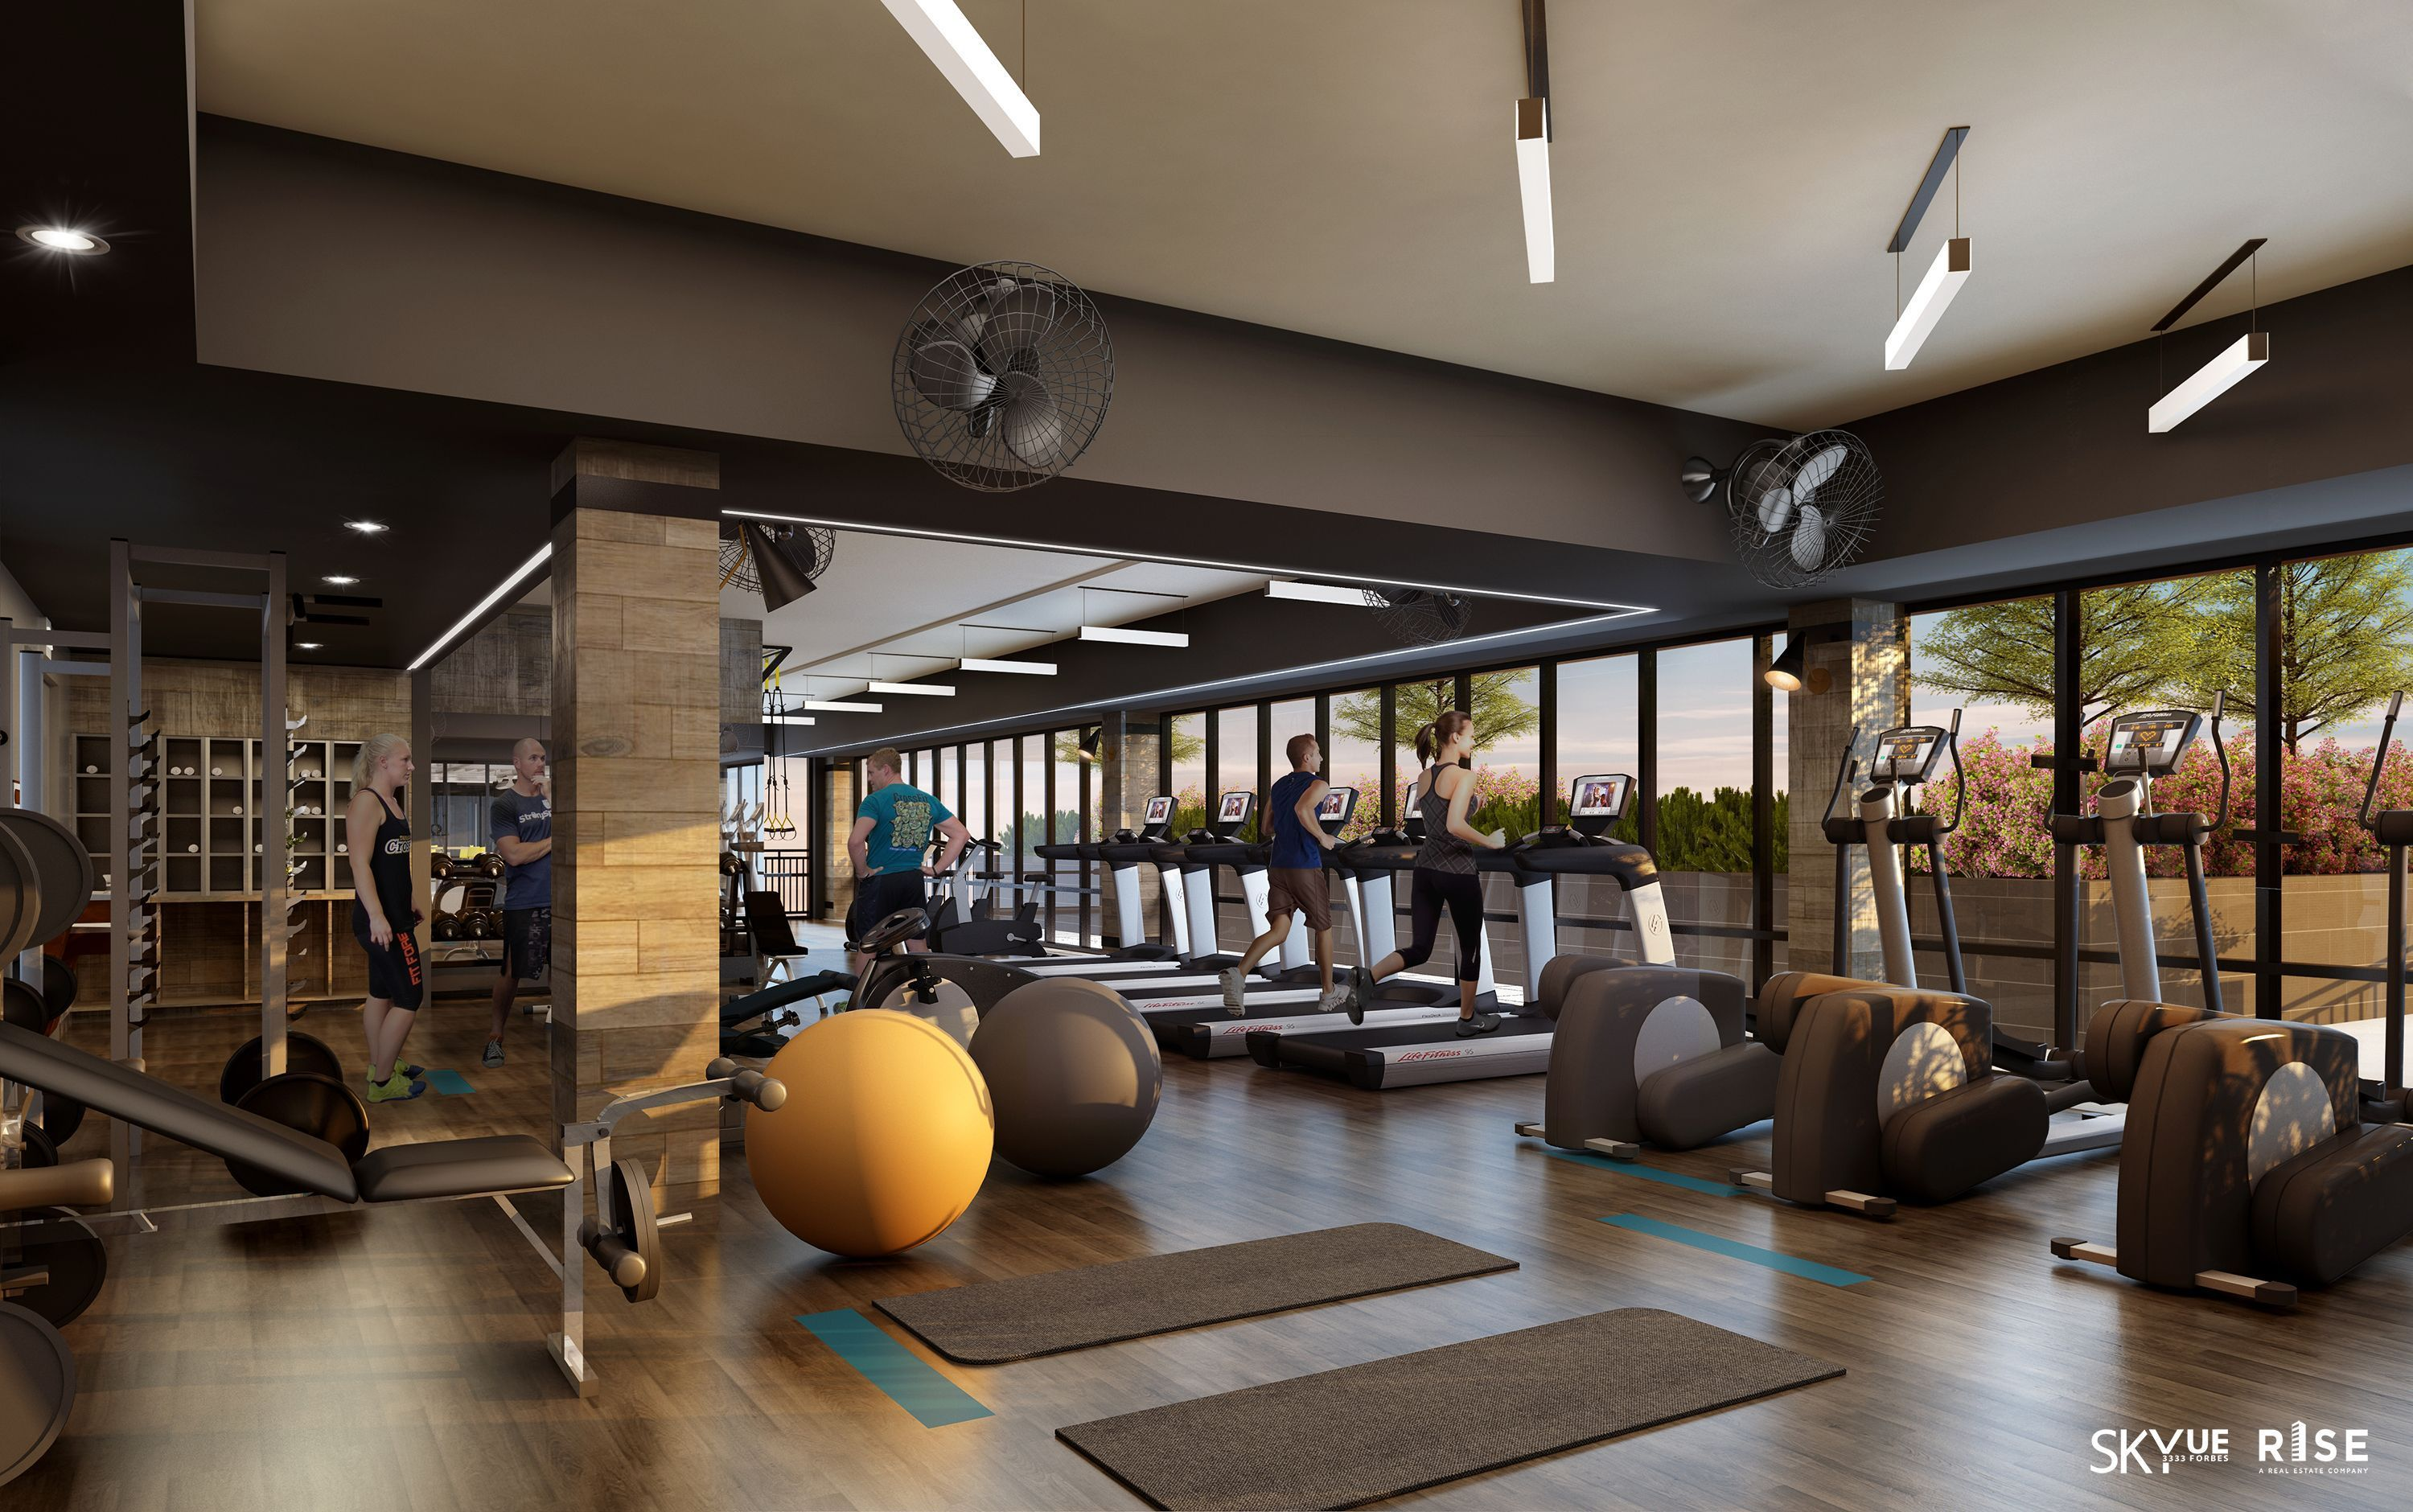 30 Best Home Gym Ideas And Gym Rooms For Your Training Room Fitness Zu Hause Keller Turnhalle